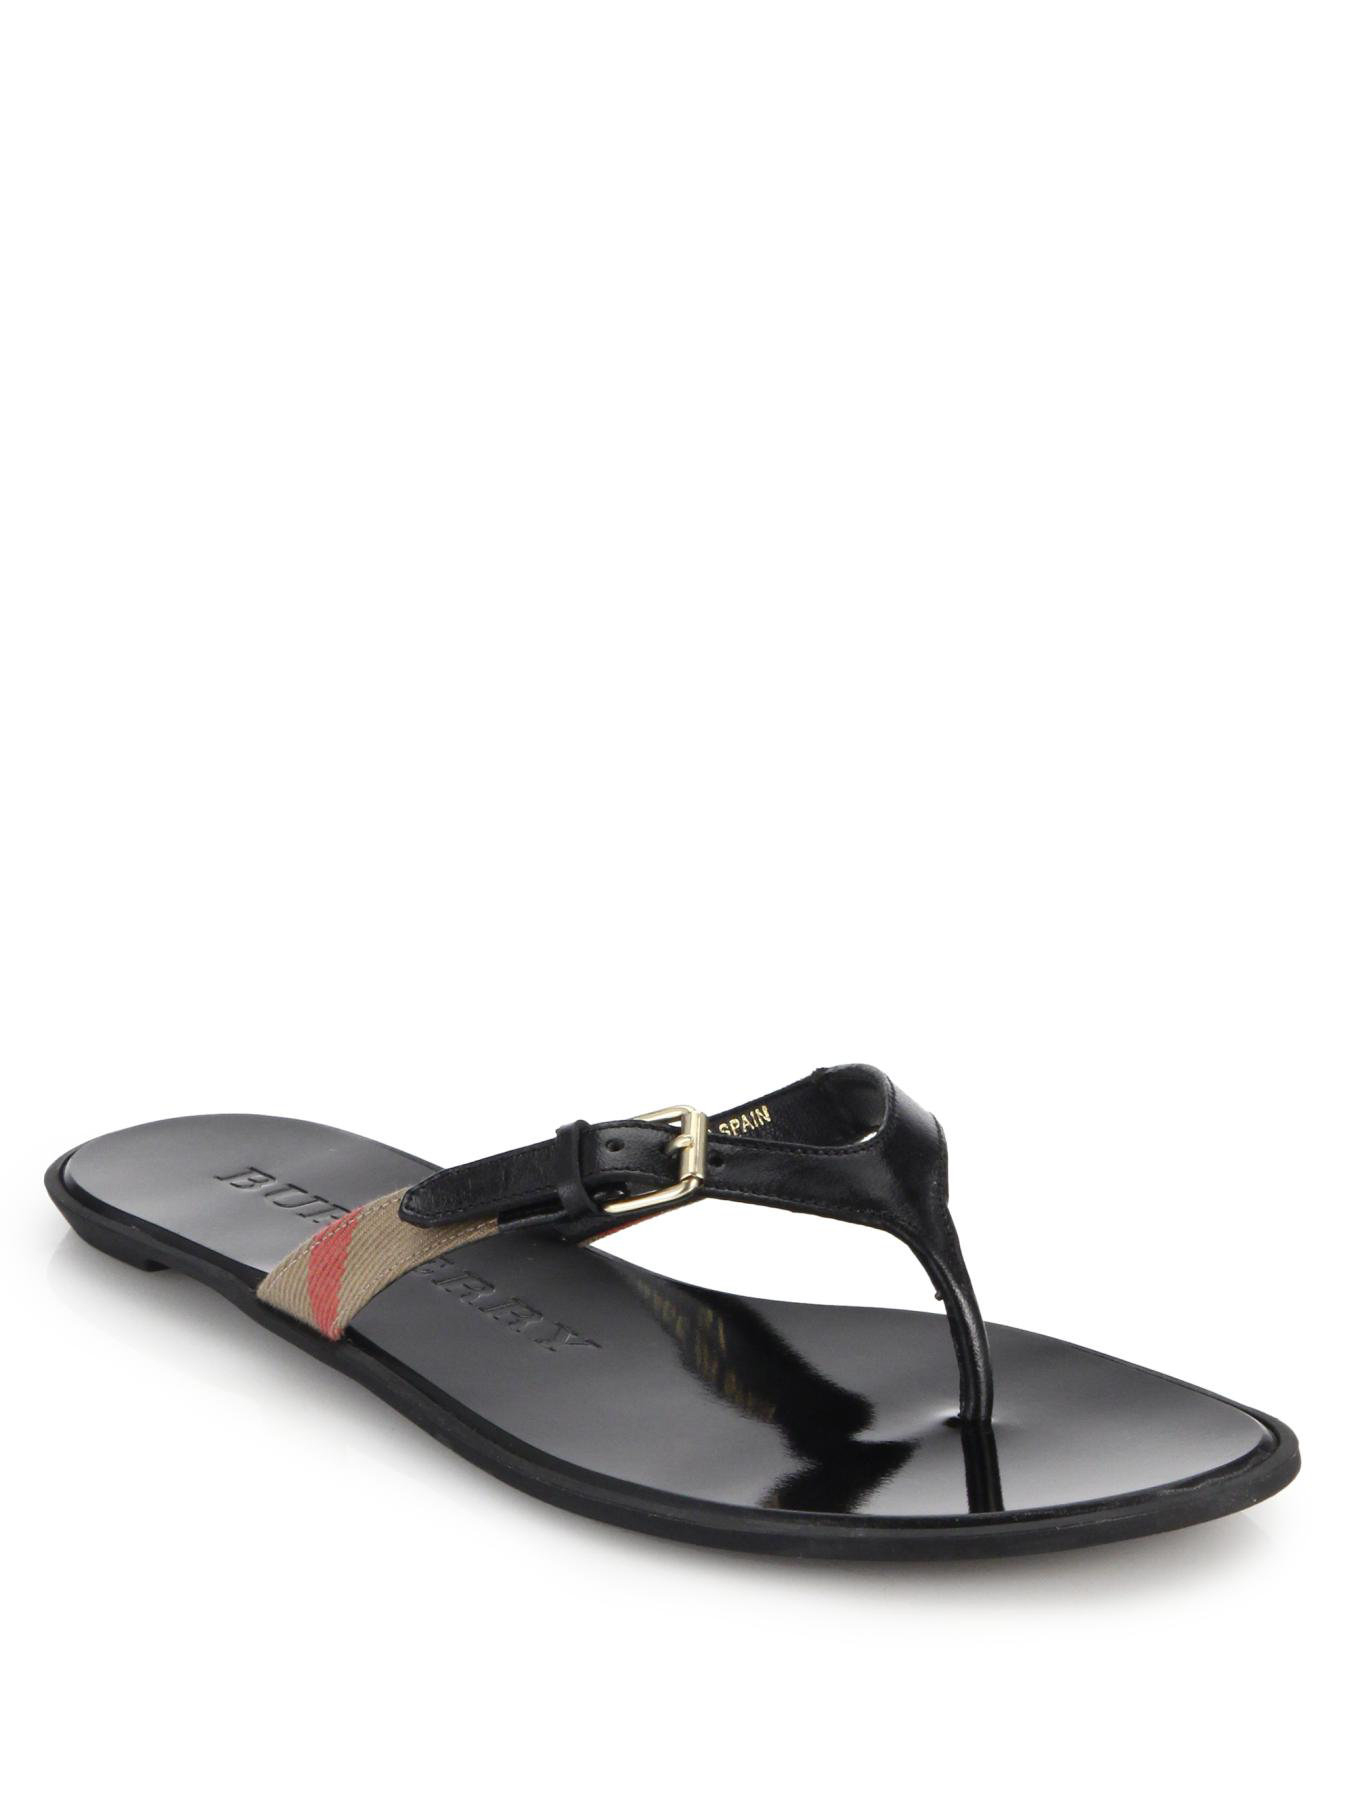 0067f48c4e09 Lyst - Burberry Maisie Leather   Check Thong Sandals in Black